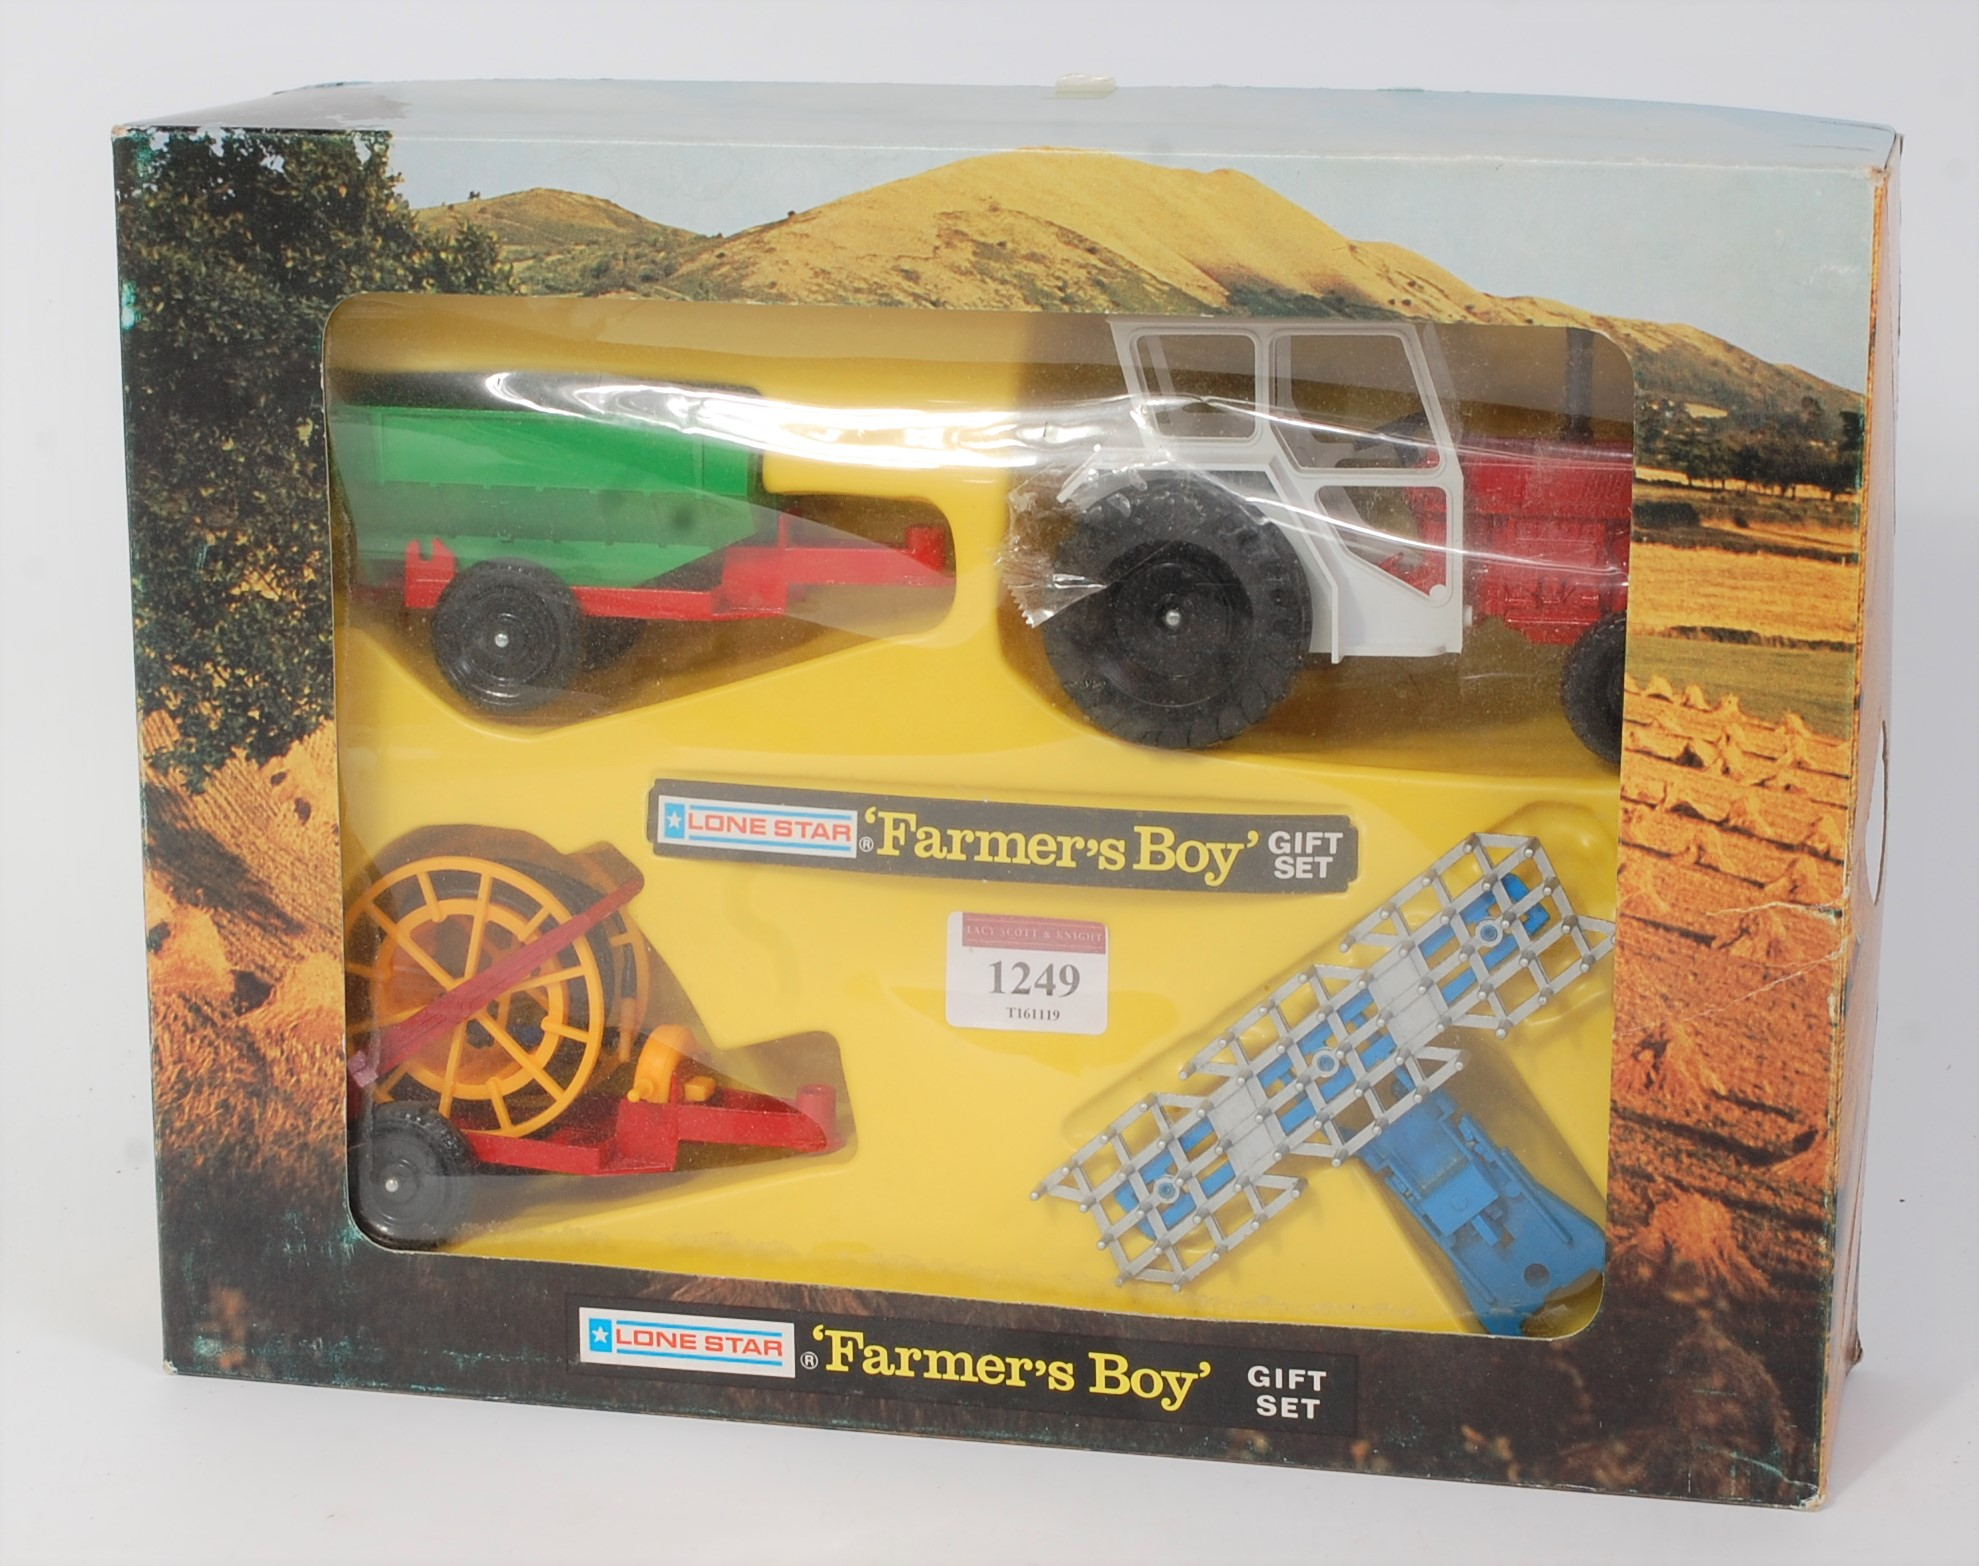 A Lonestar No. 1741 Farmers Boy gift set comprising of International Tractor with three various